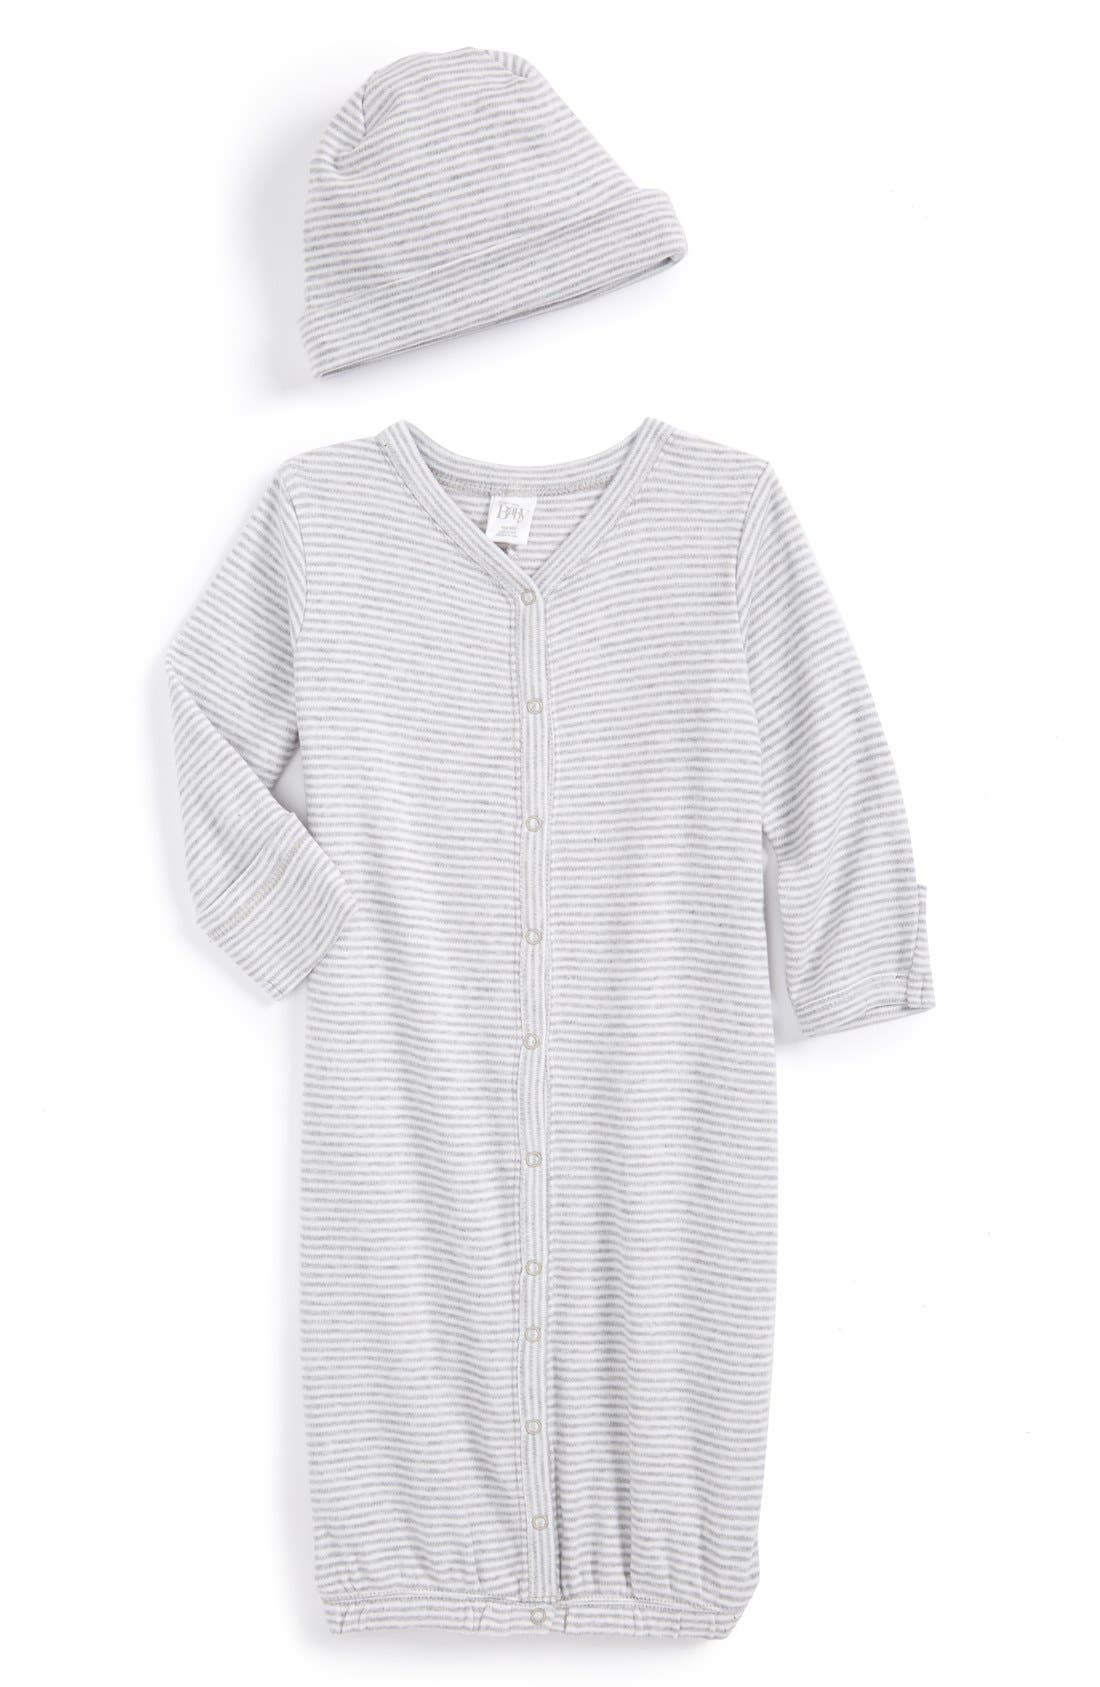 NORDSTROM BABY, Convertible Cotton Gown & Hat, Main thumbnail 1, color, GREY ASH HEATHER FINE STRIPE